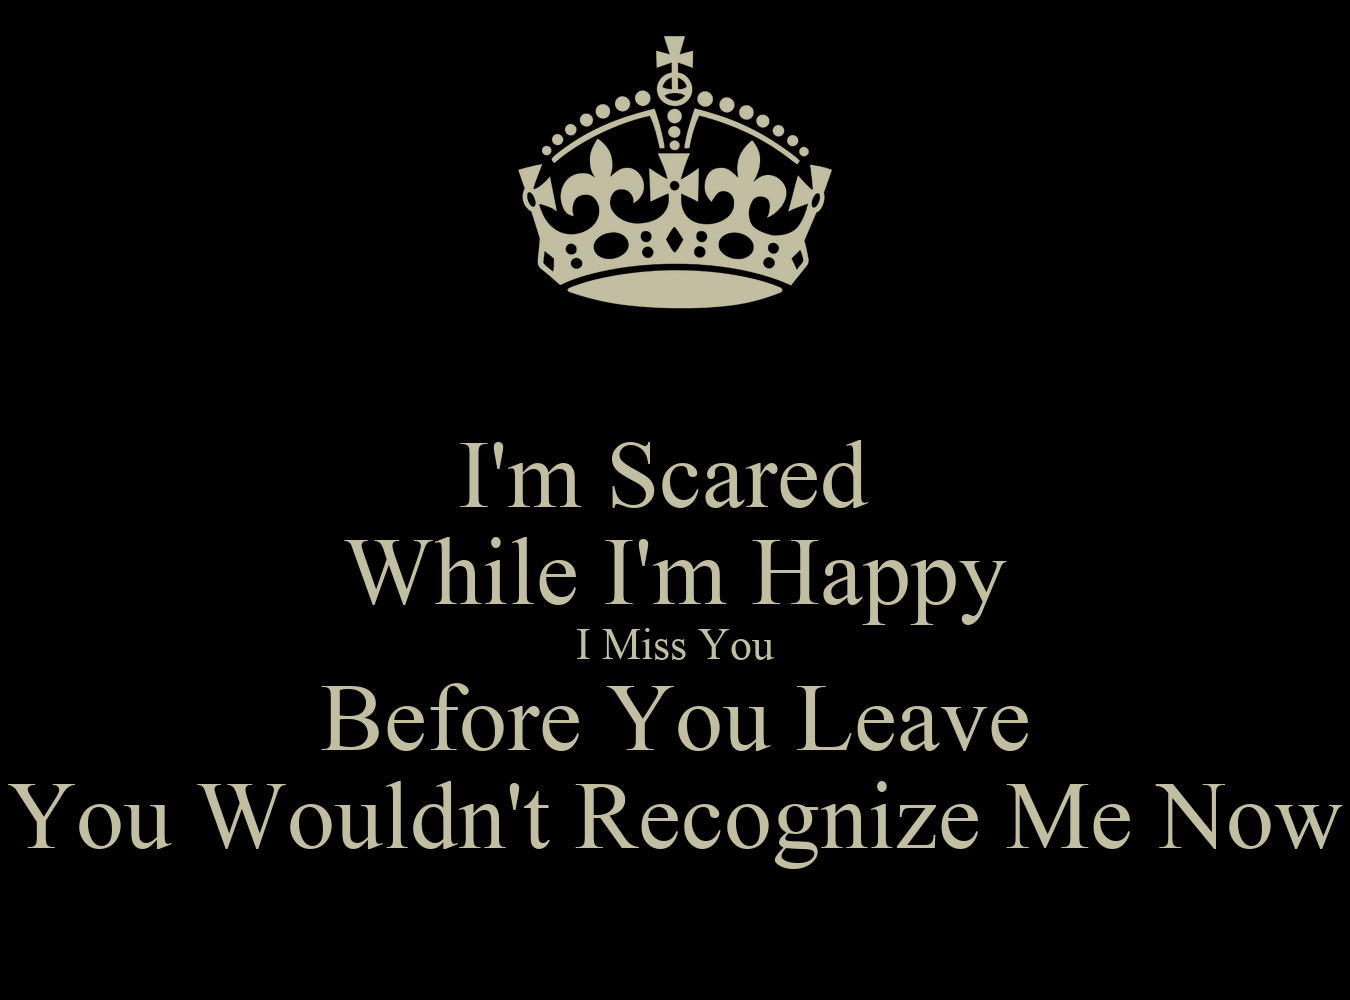 I m Scared While I m Happy I  I Am Happy With You Wallpapers